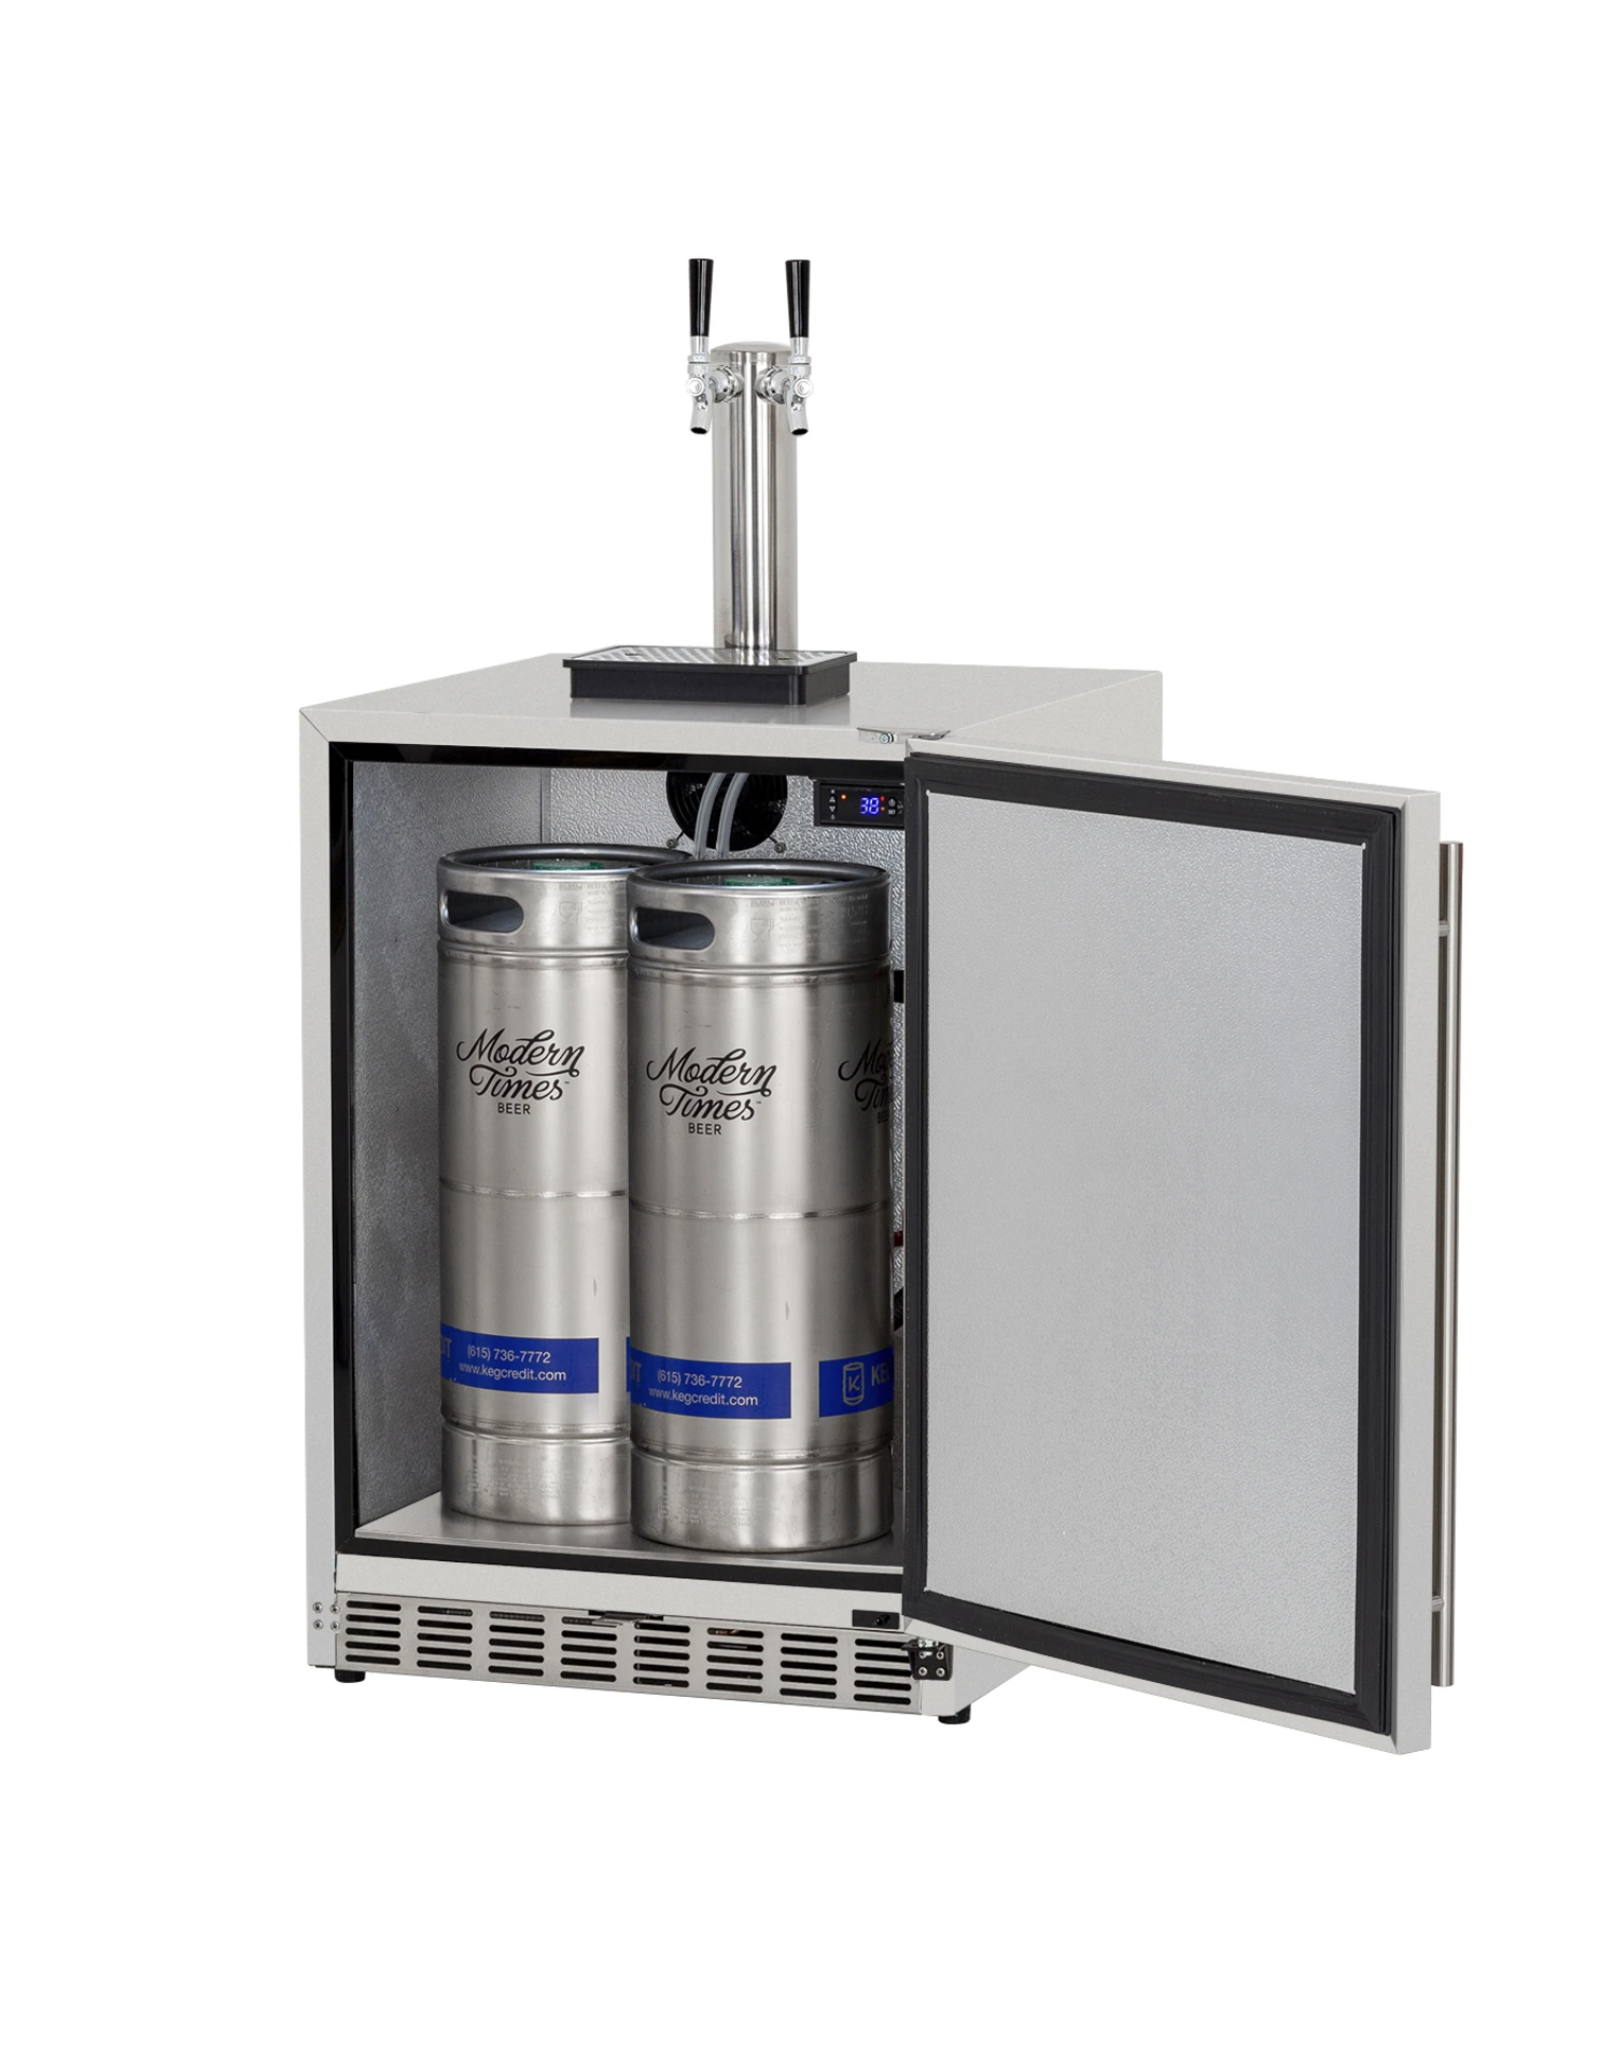 Renaissance Cooking Systems Renaissance Cooking Systems The Double Tap Outdoor Kegerator - REFR6